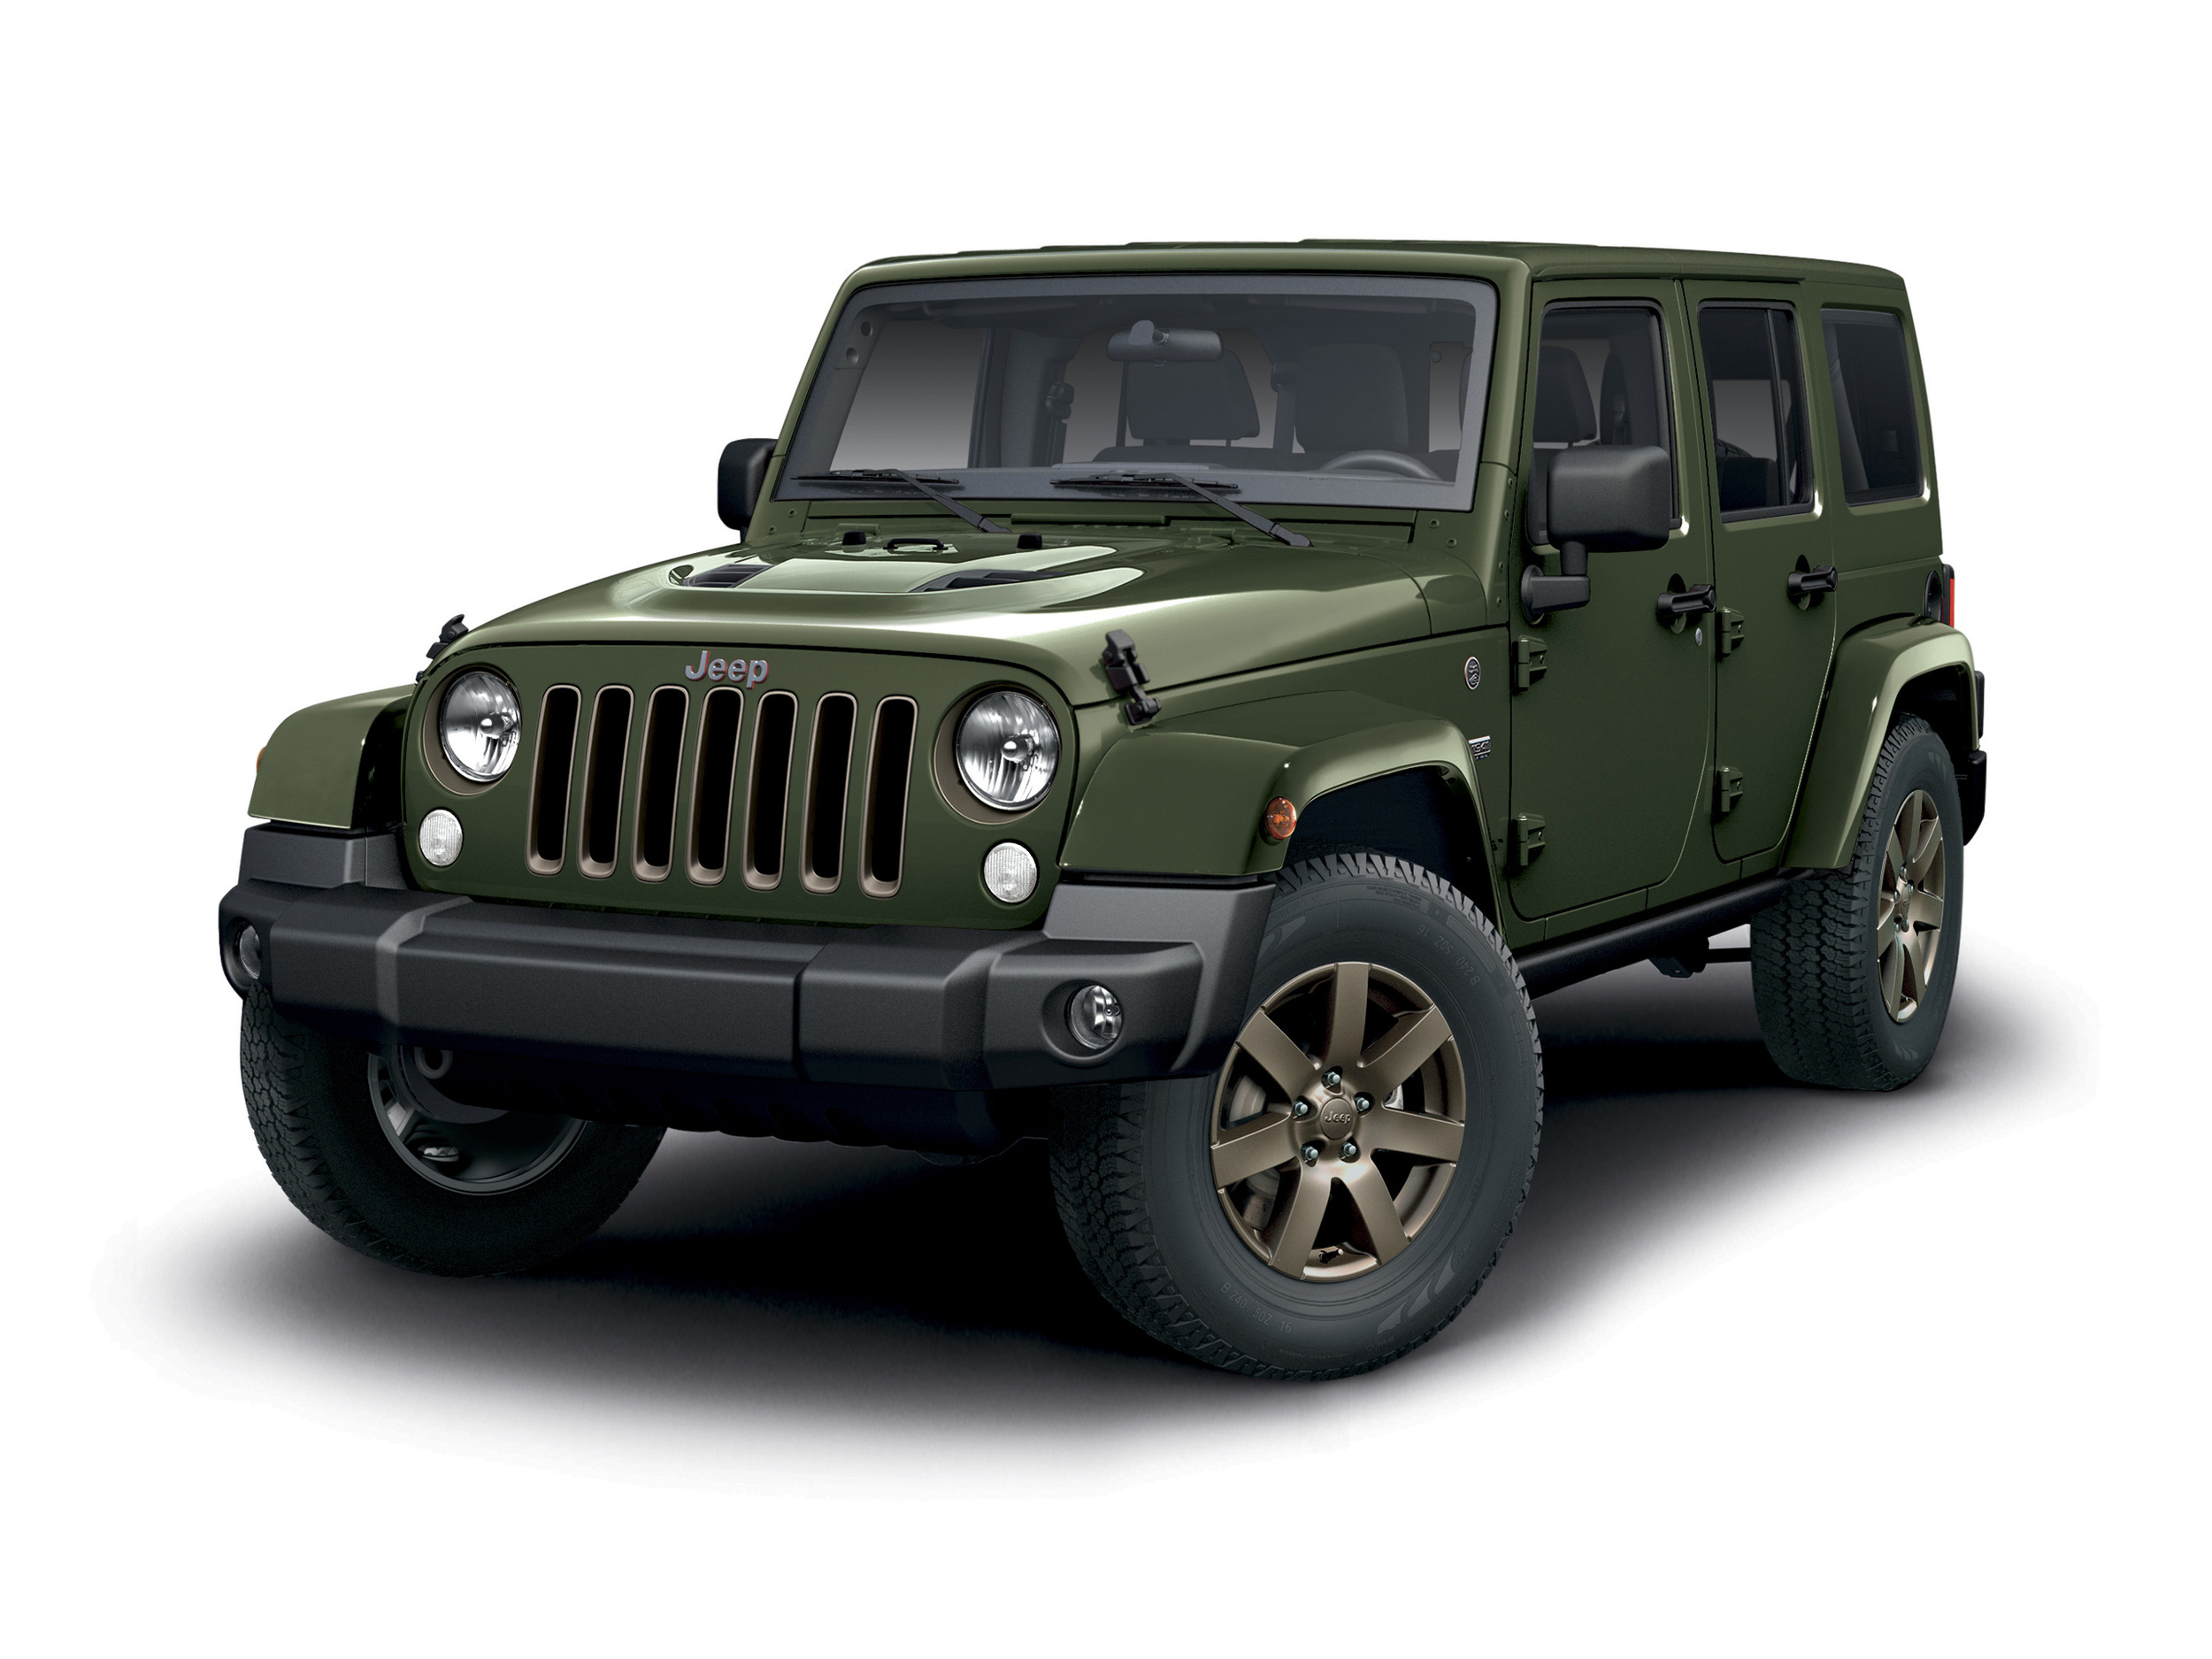 98861Jeep_Wrangler-75th-anniversary_01.jpg